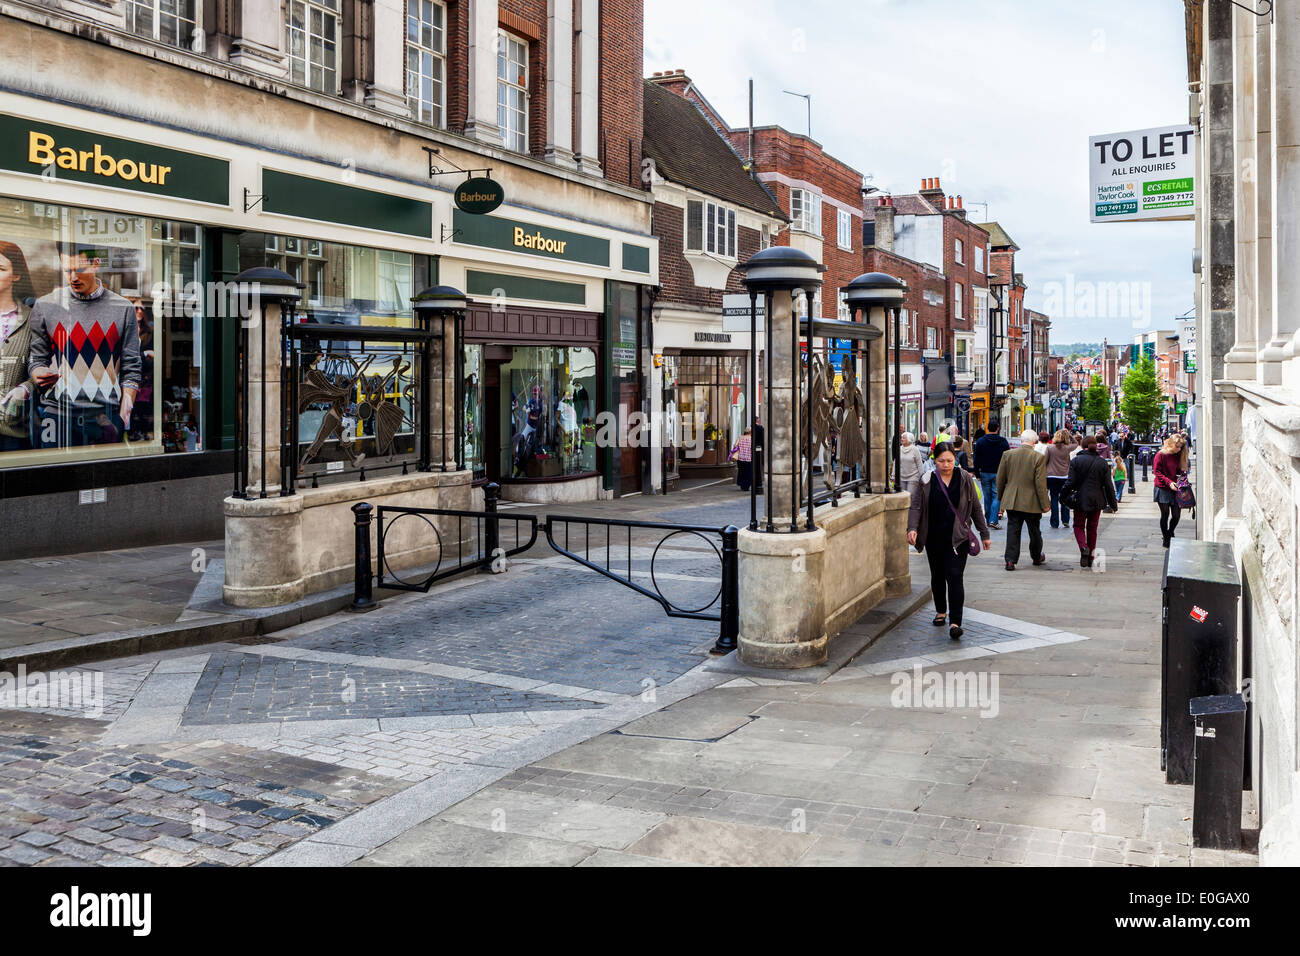 Peascod Shopping Street With Decorative Gates And Trendy Shops Windsor Berkshire Uk